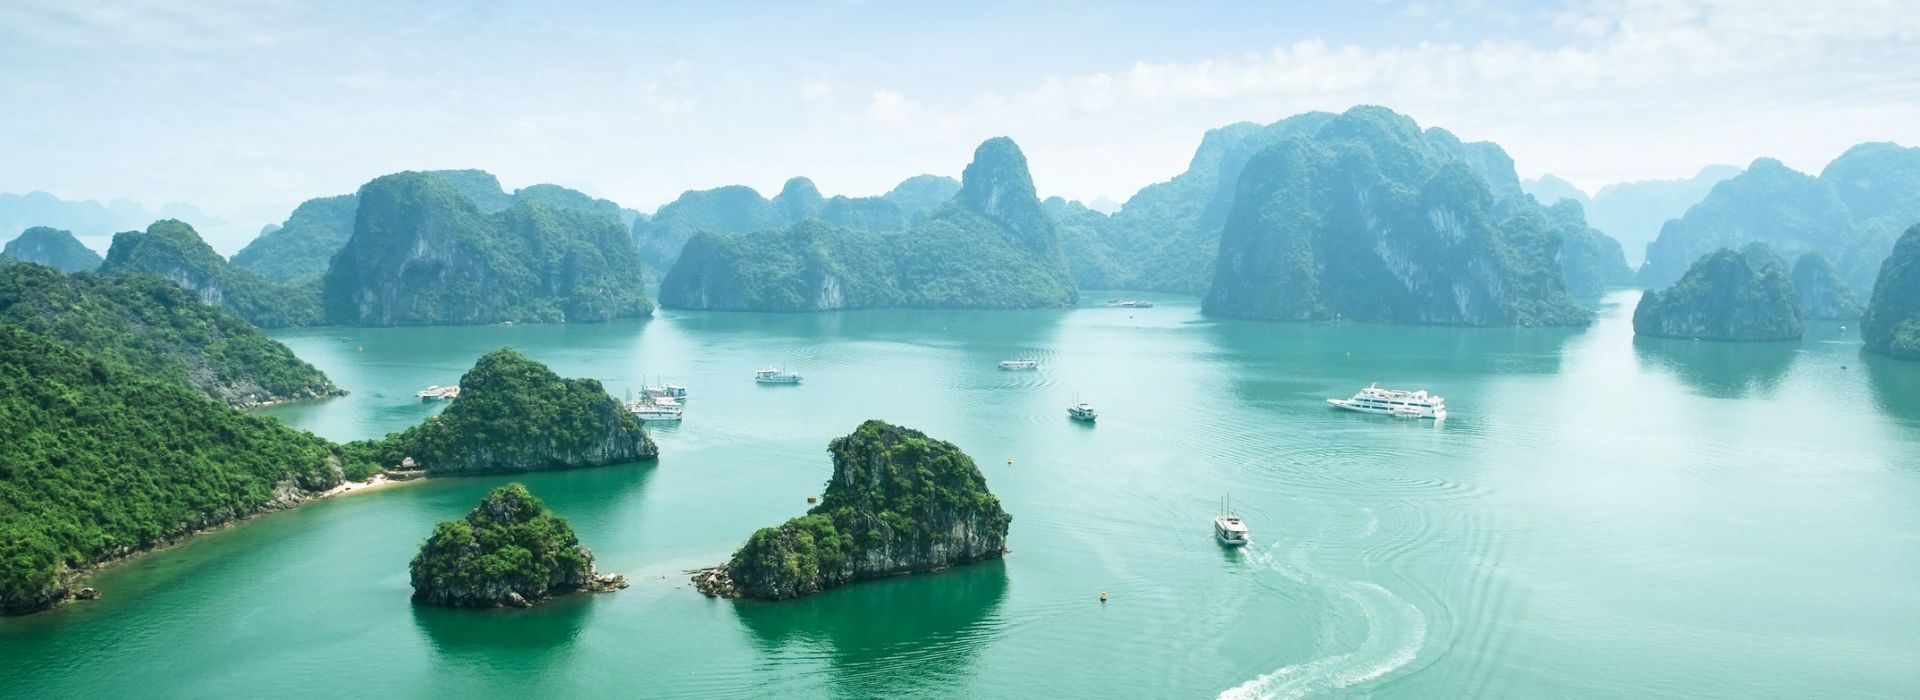 Local boat rides Tours in Ho Chi Minh City